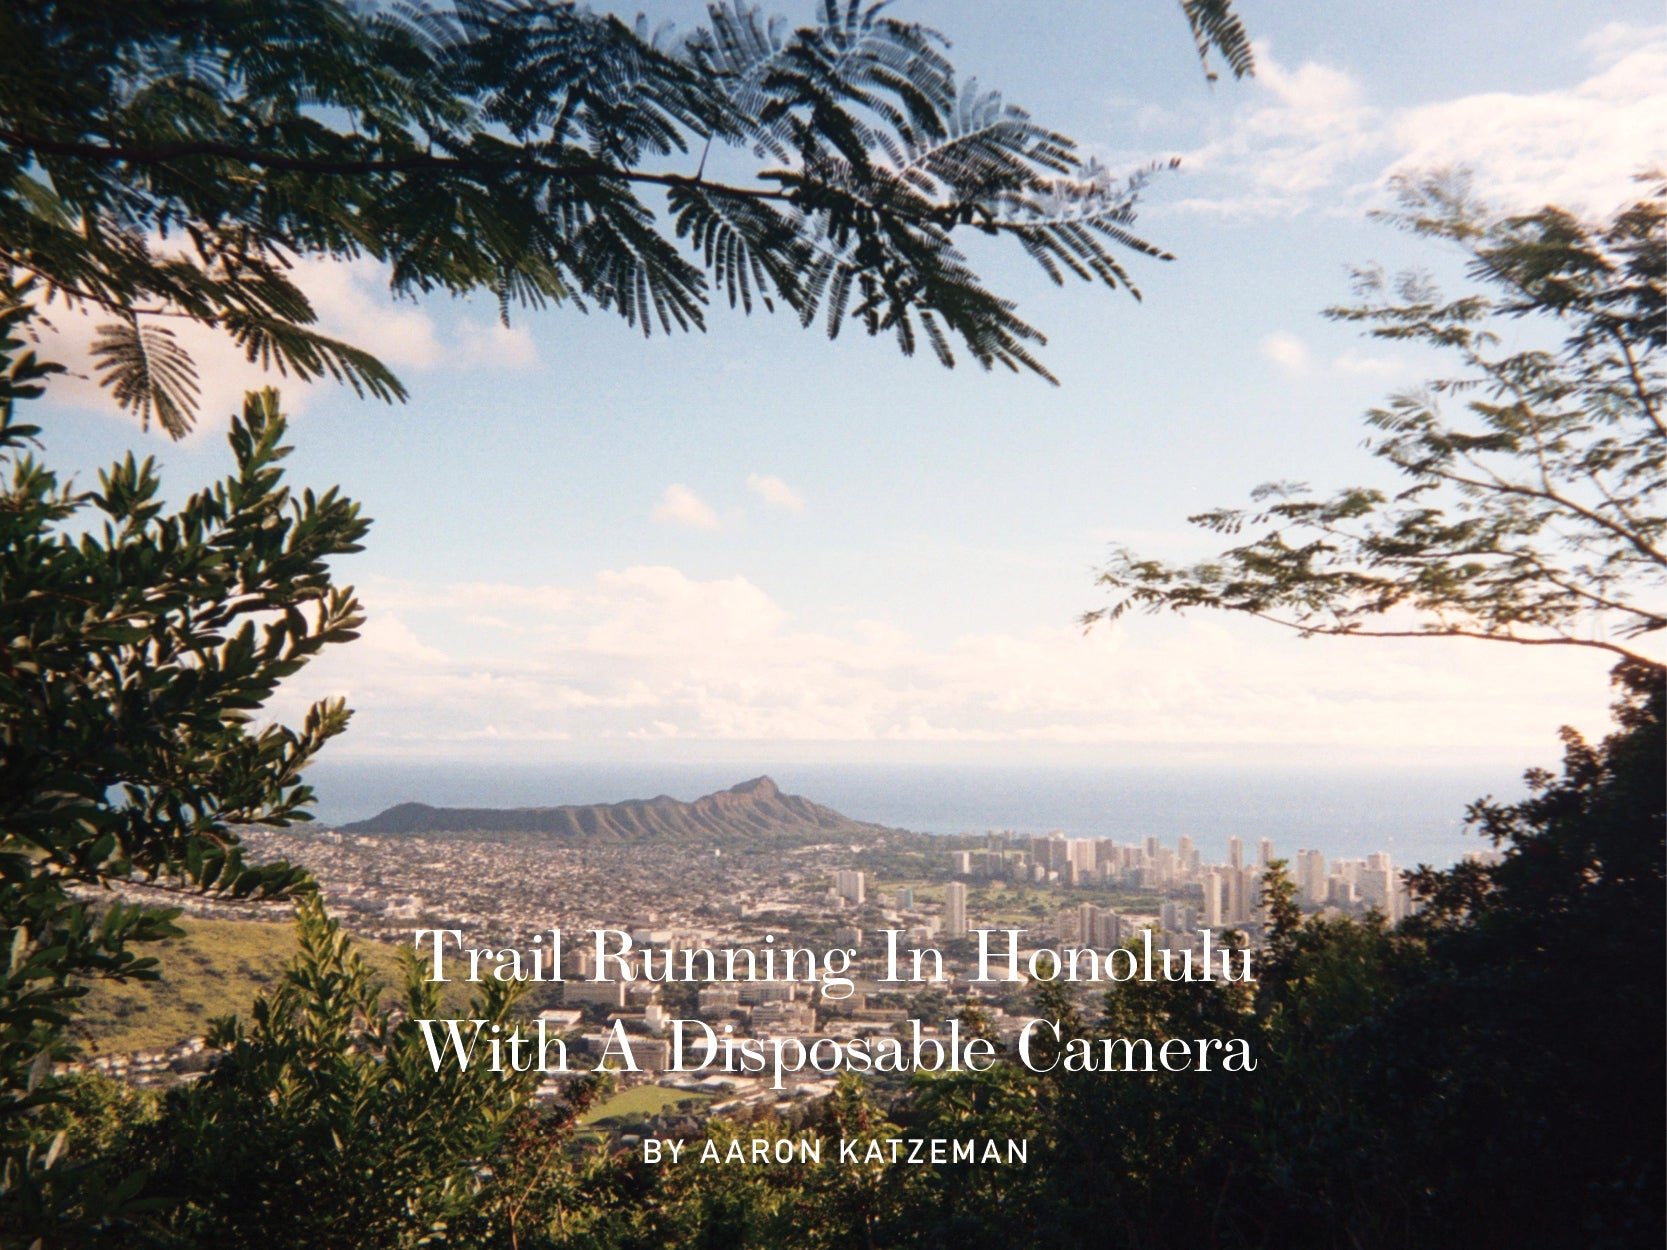 TRAIL RUNNING IN HONOLULU WITH A DISPOSABLE CAMERA